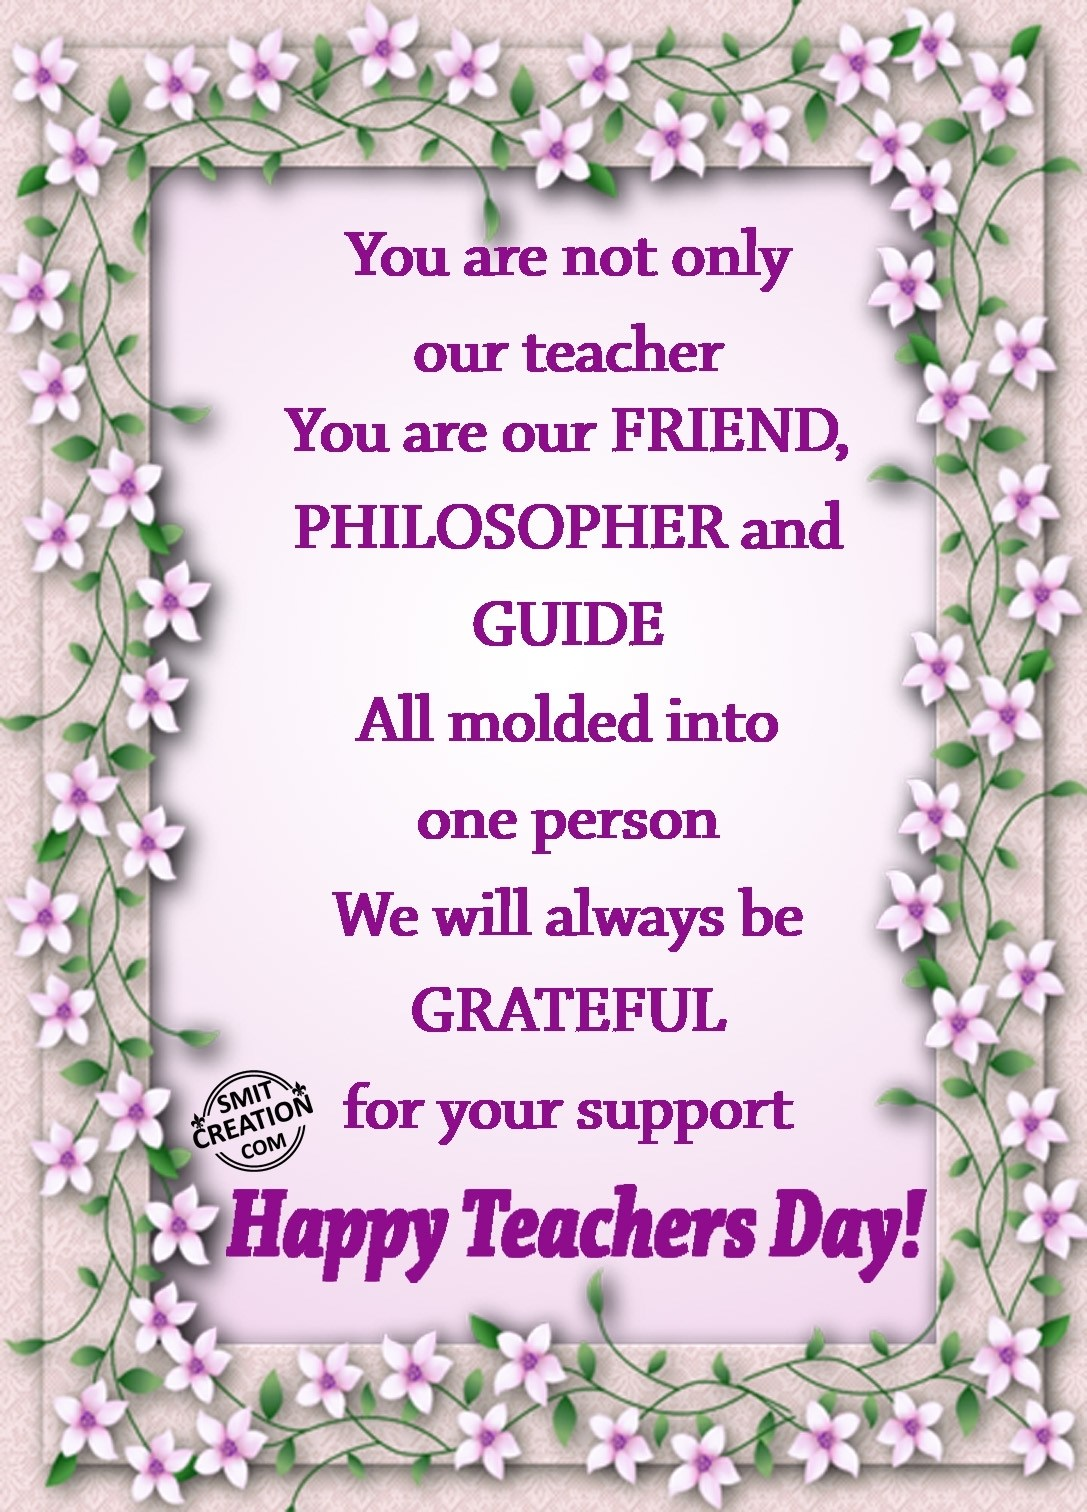 Teachers Day Pictures and Graphics - SmitCreation com